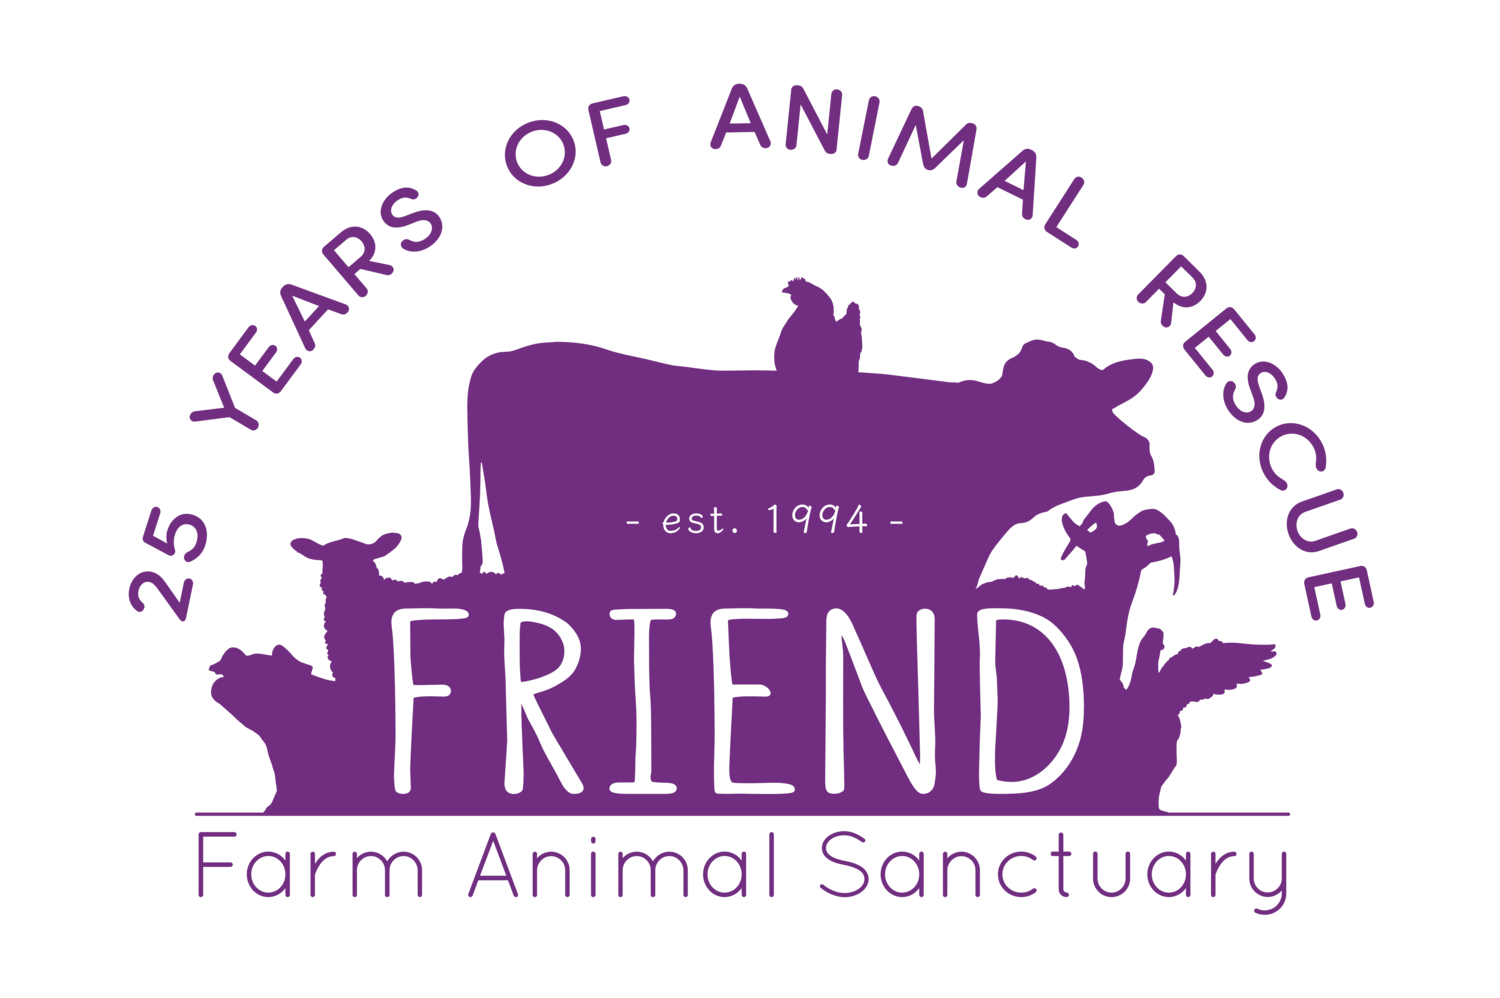 Friend Farm Animal Sanctuary